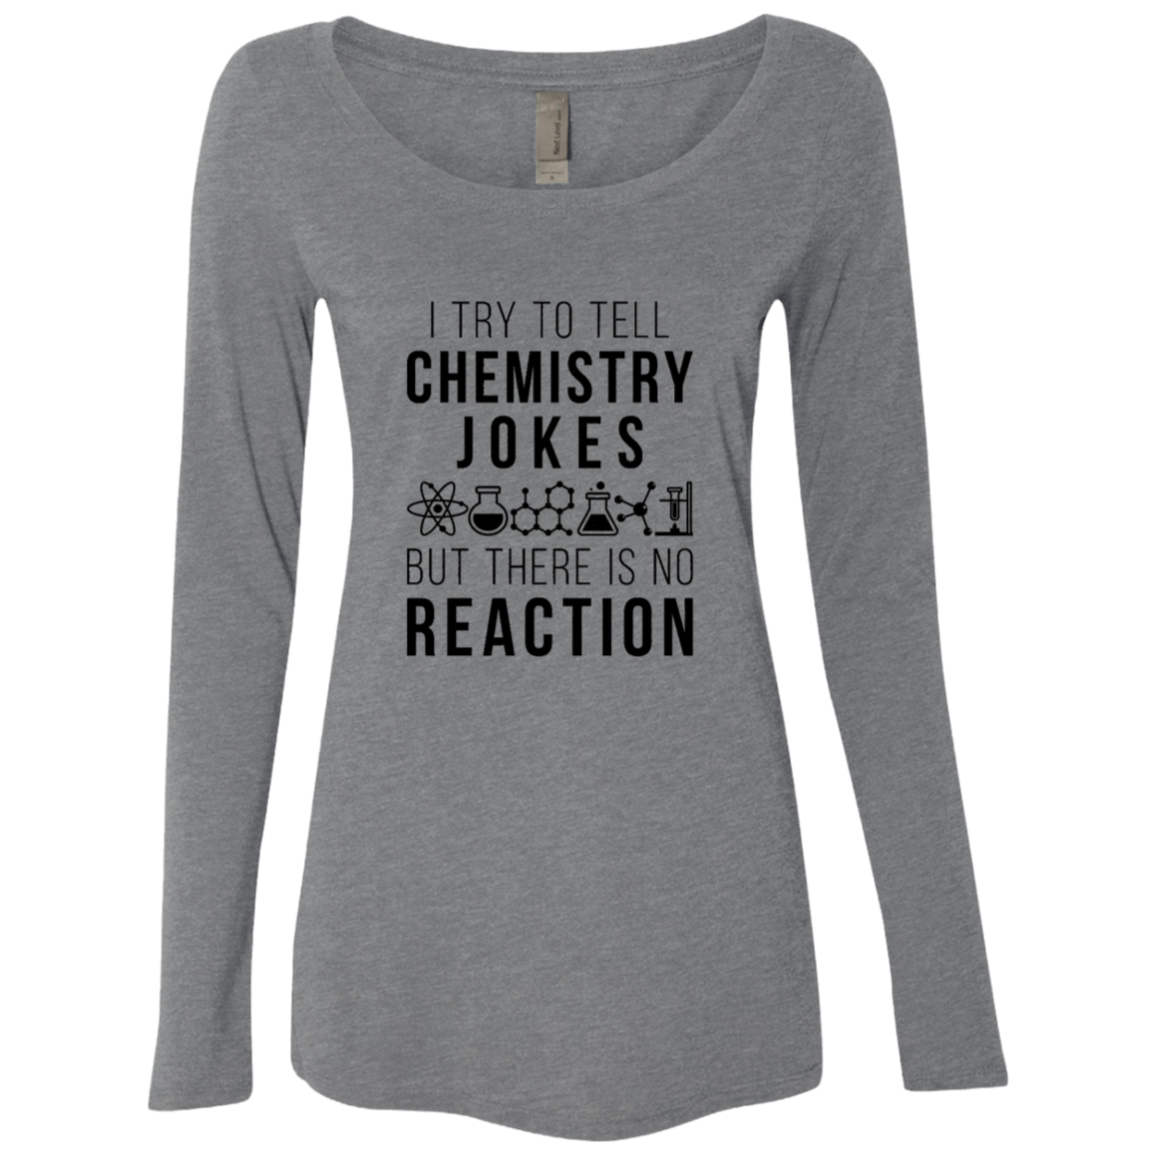 I Try To Tell Chemistry Jokes But There Is No Reaction Women's Long Sleeve Tee